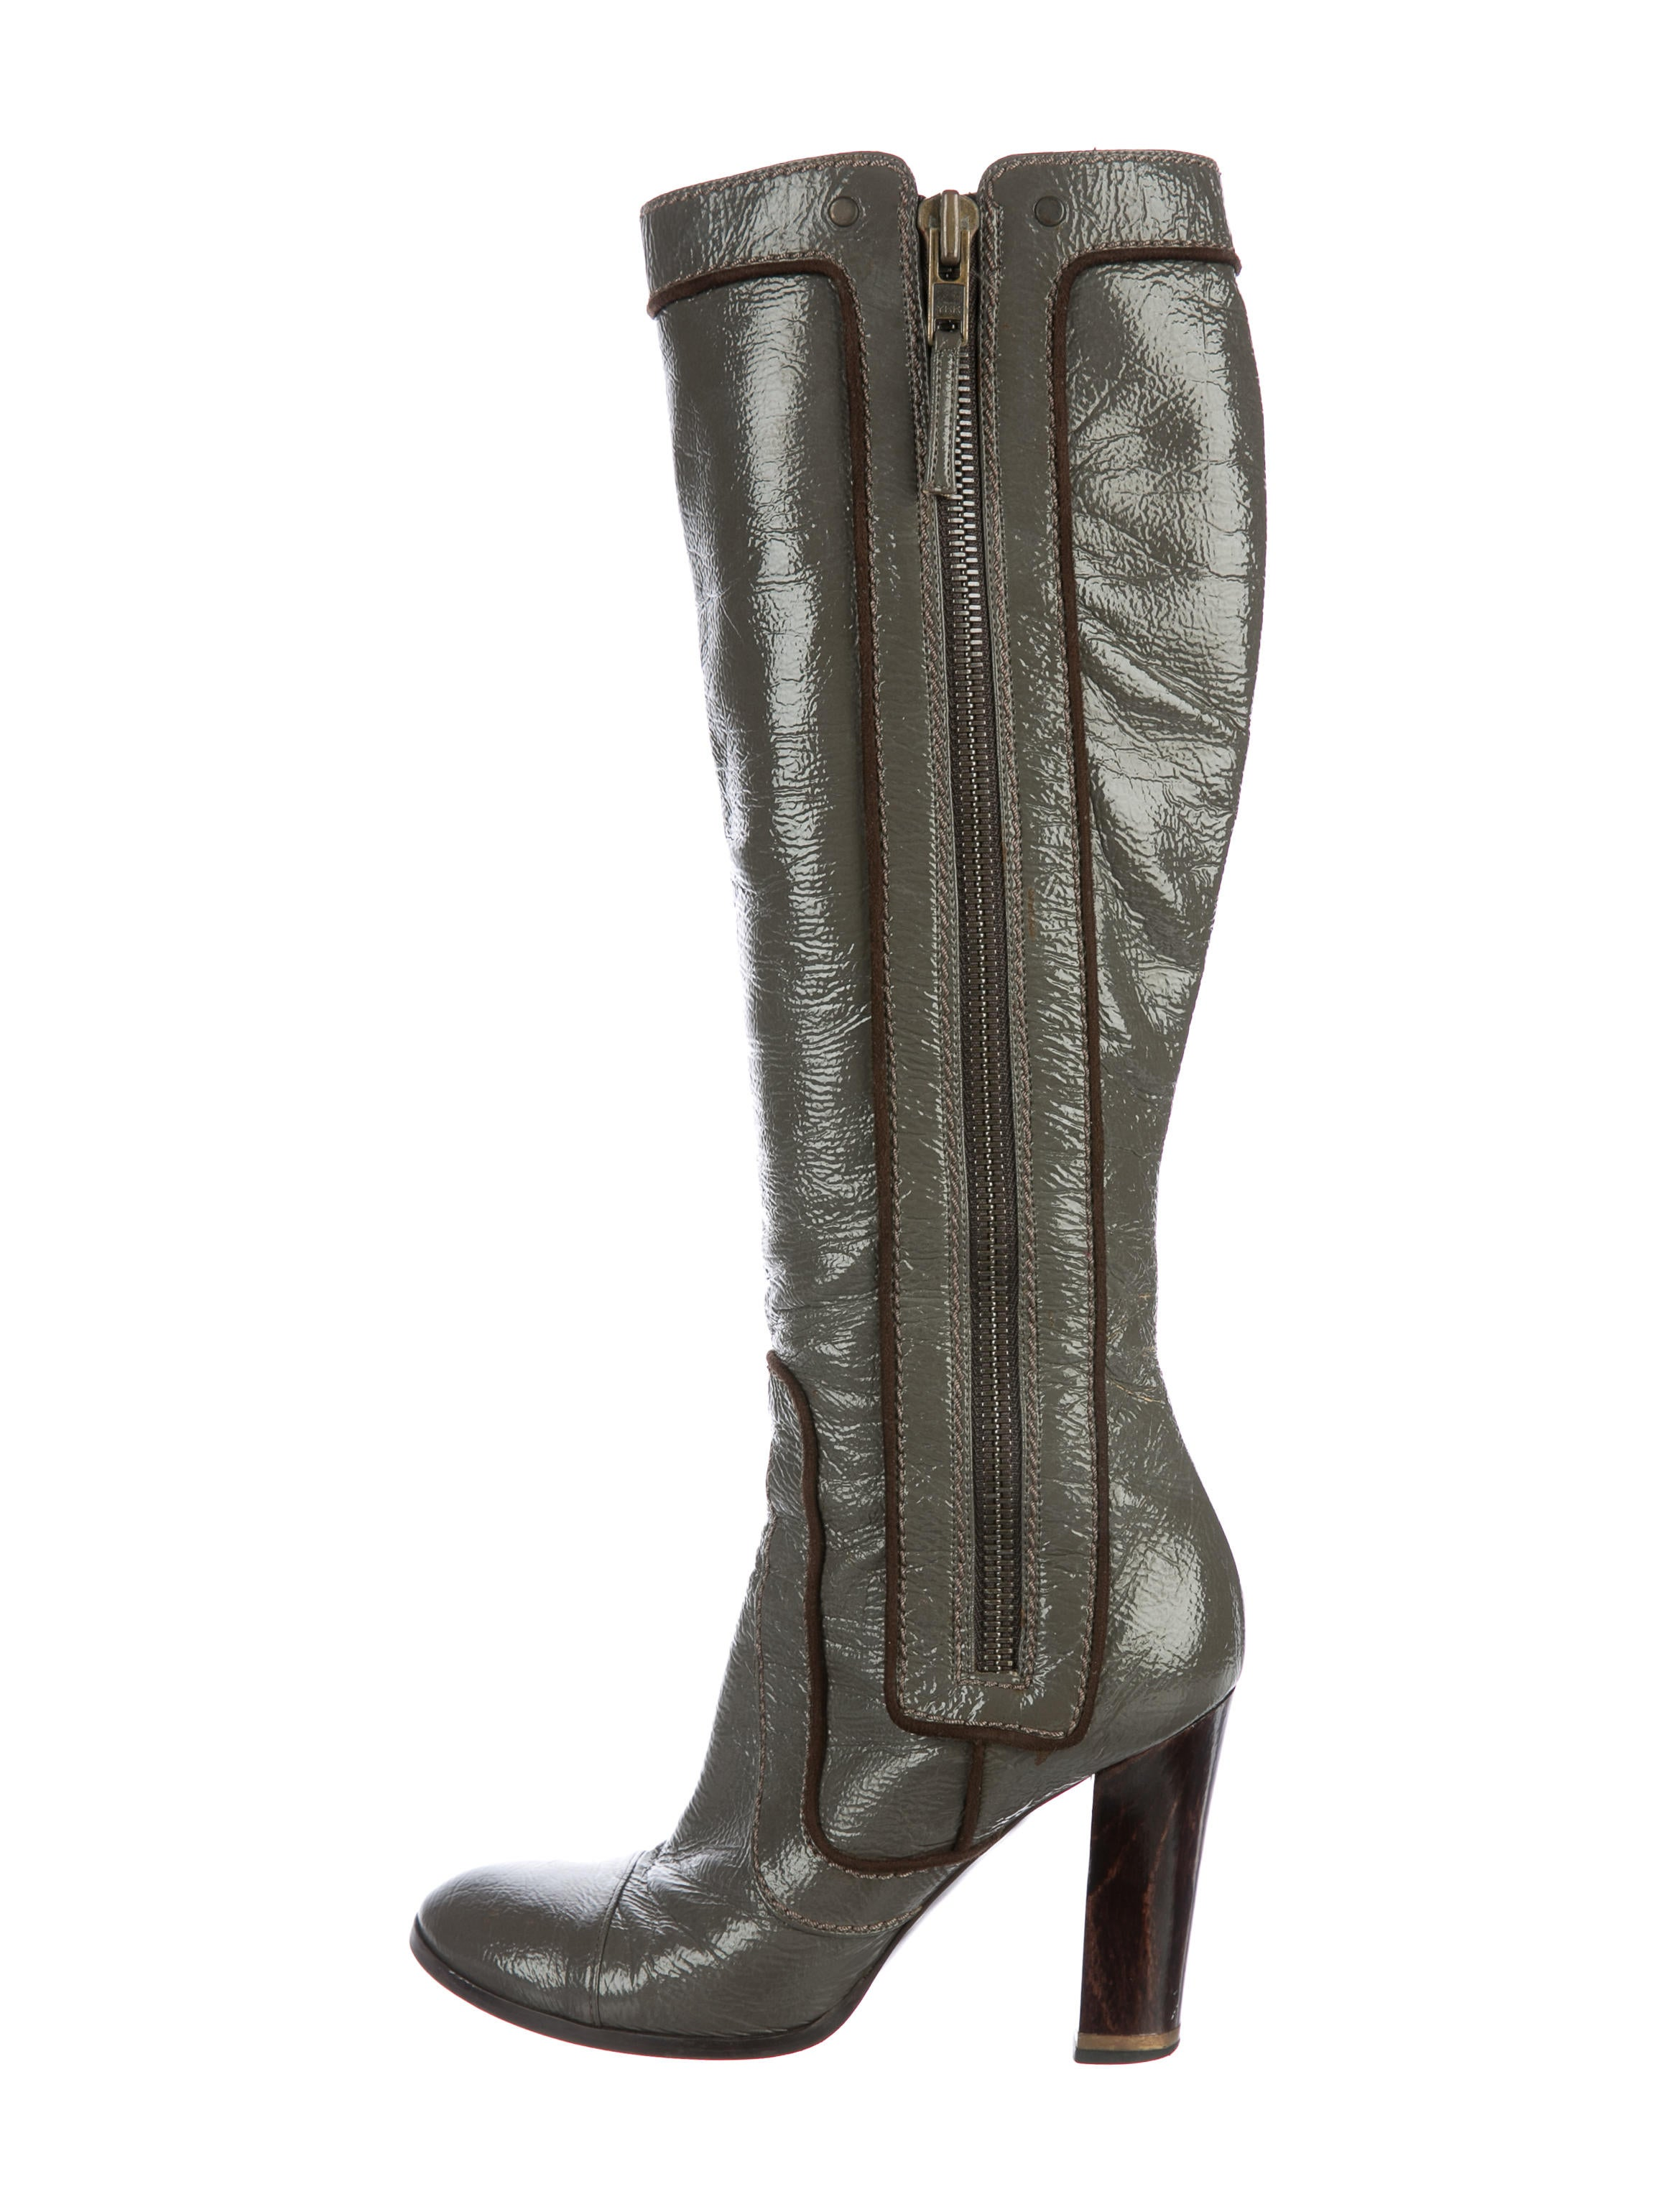 Stella McCartney Patent Knee-High Boots cheap sale huge surprise YmbT5u2Ugc